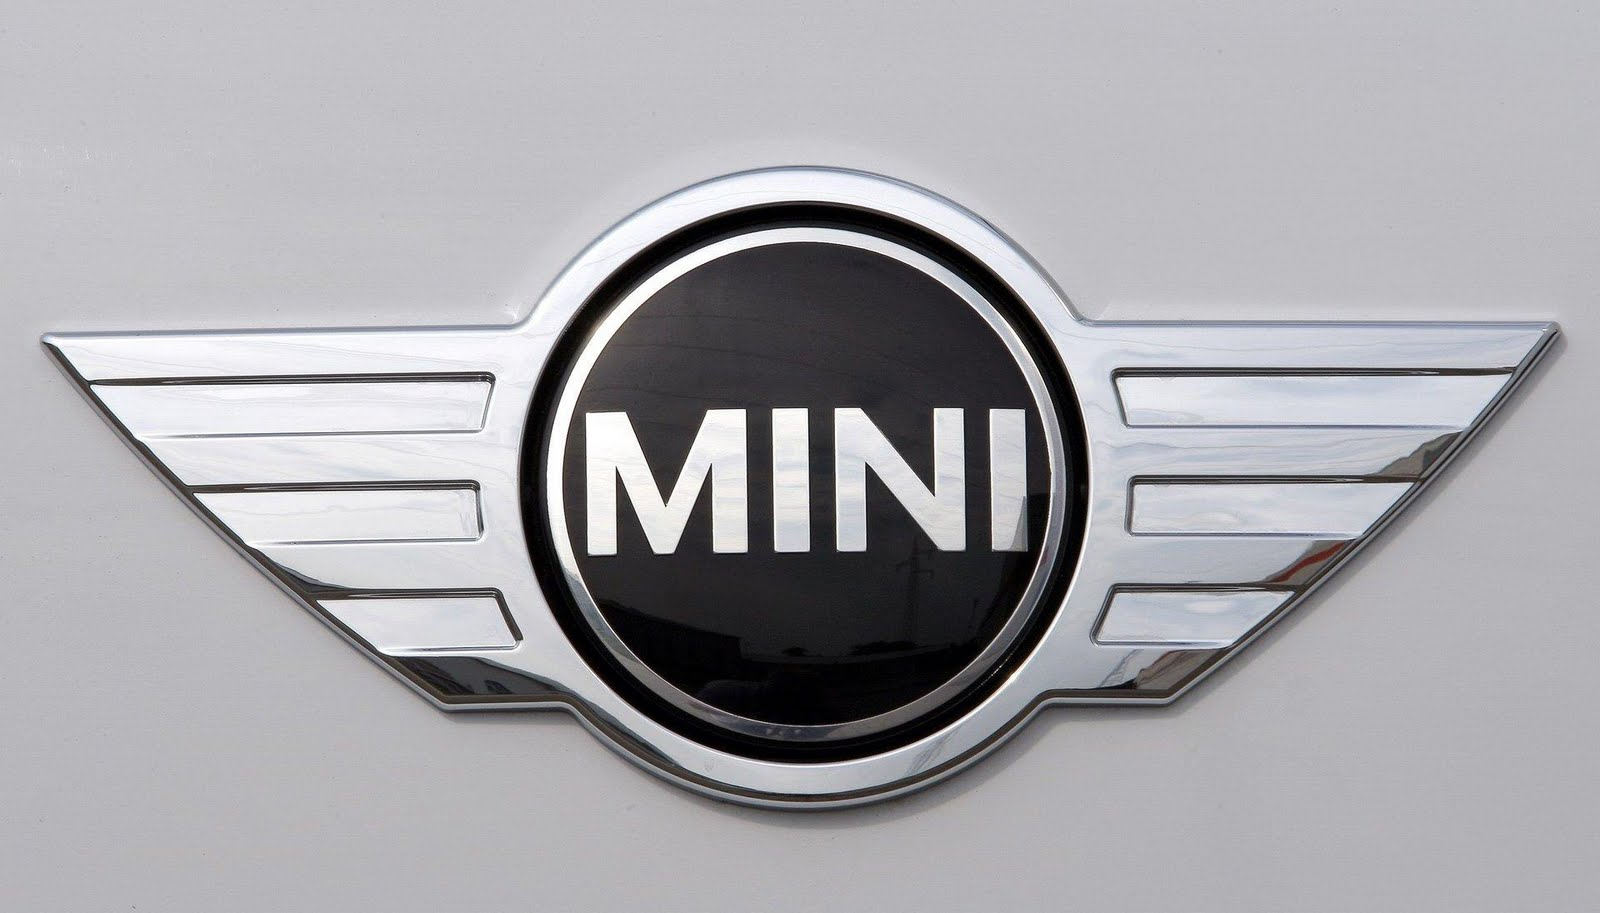 Mini Cooper Logo Mini Car Symbol Meaning And History Car Brand